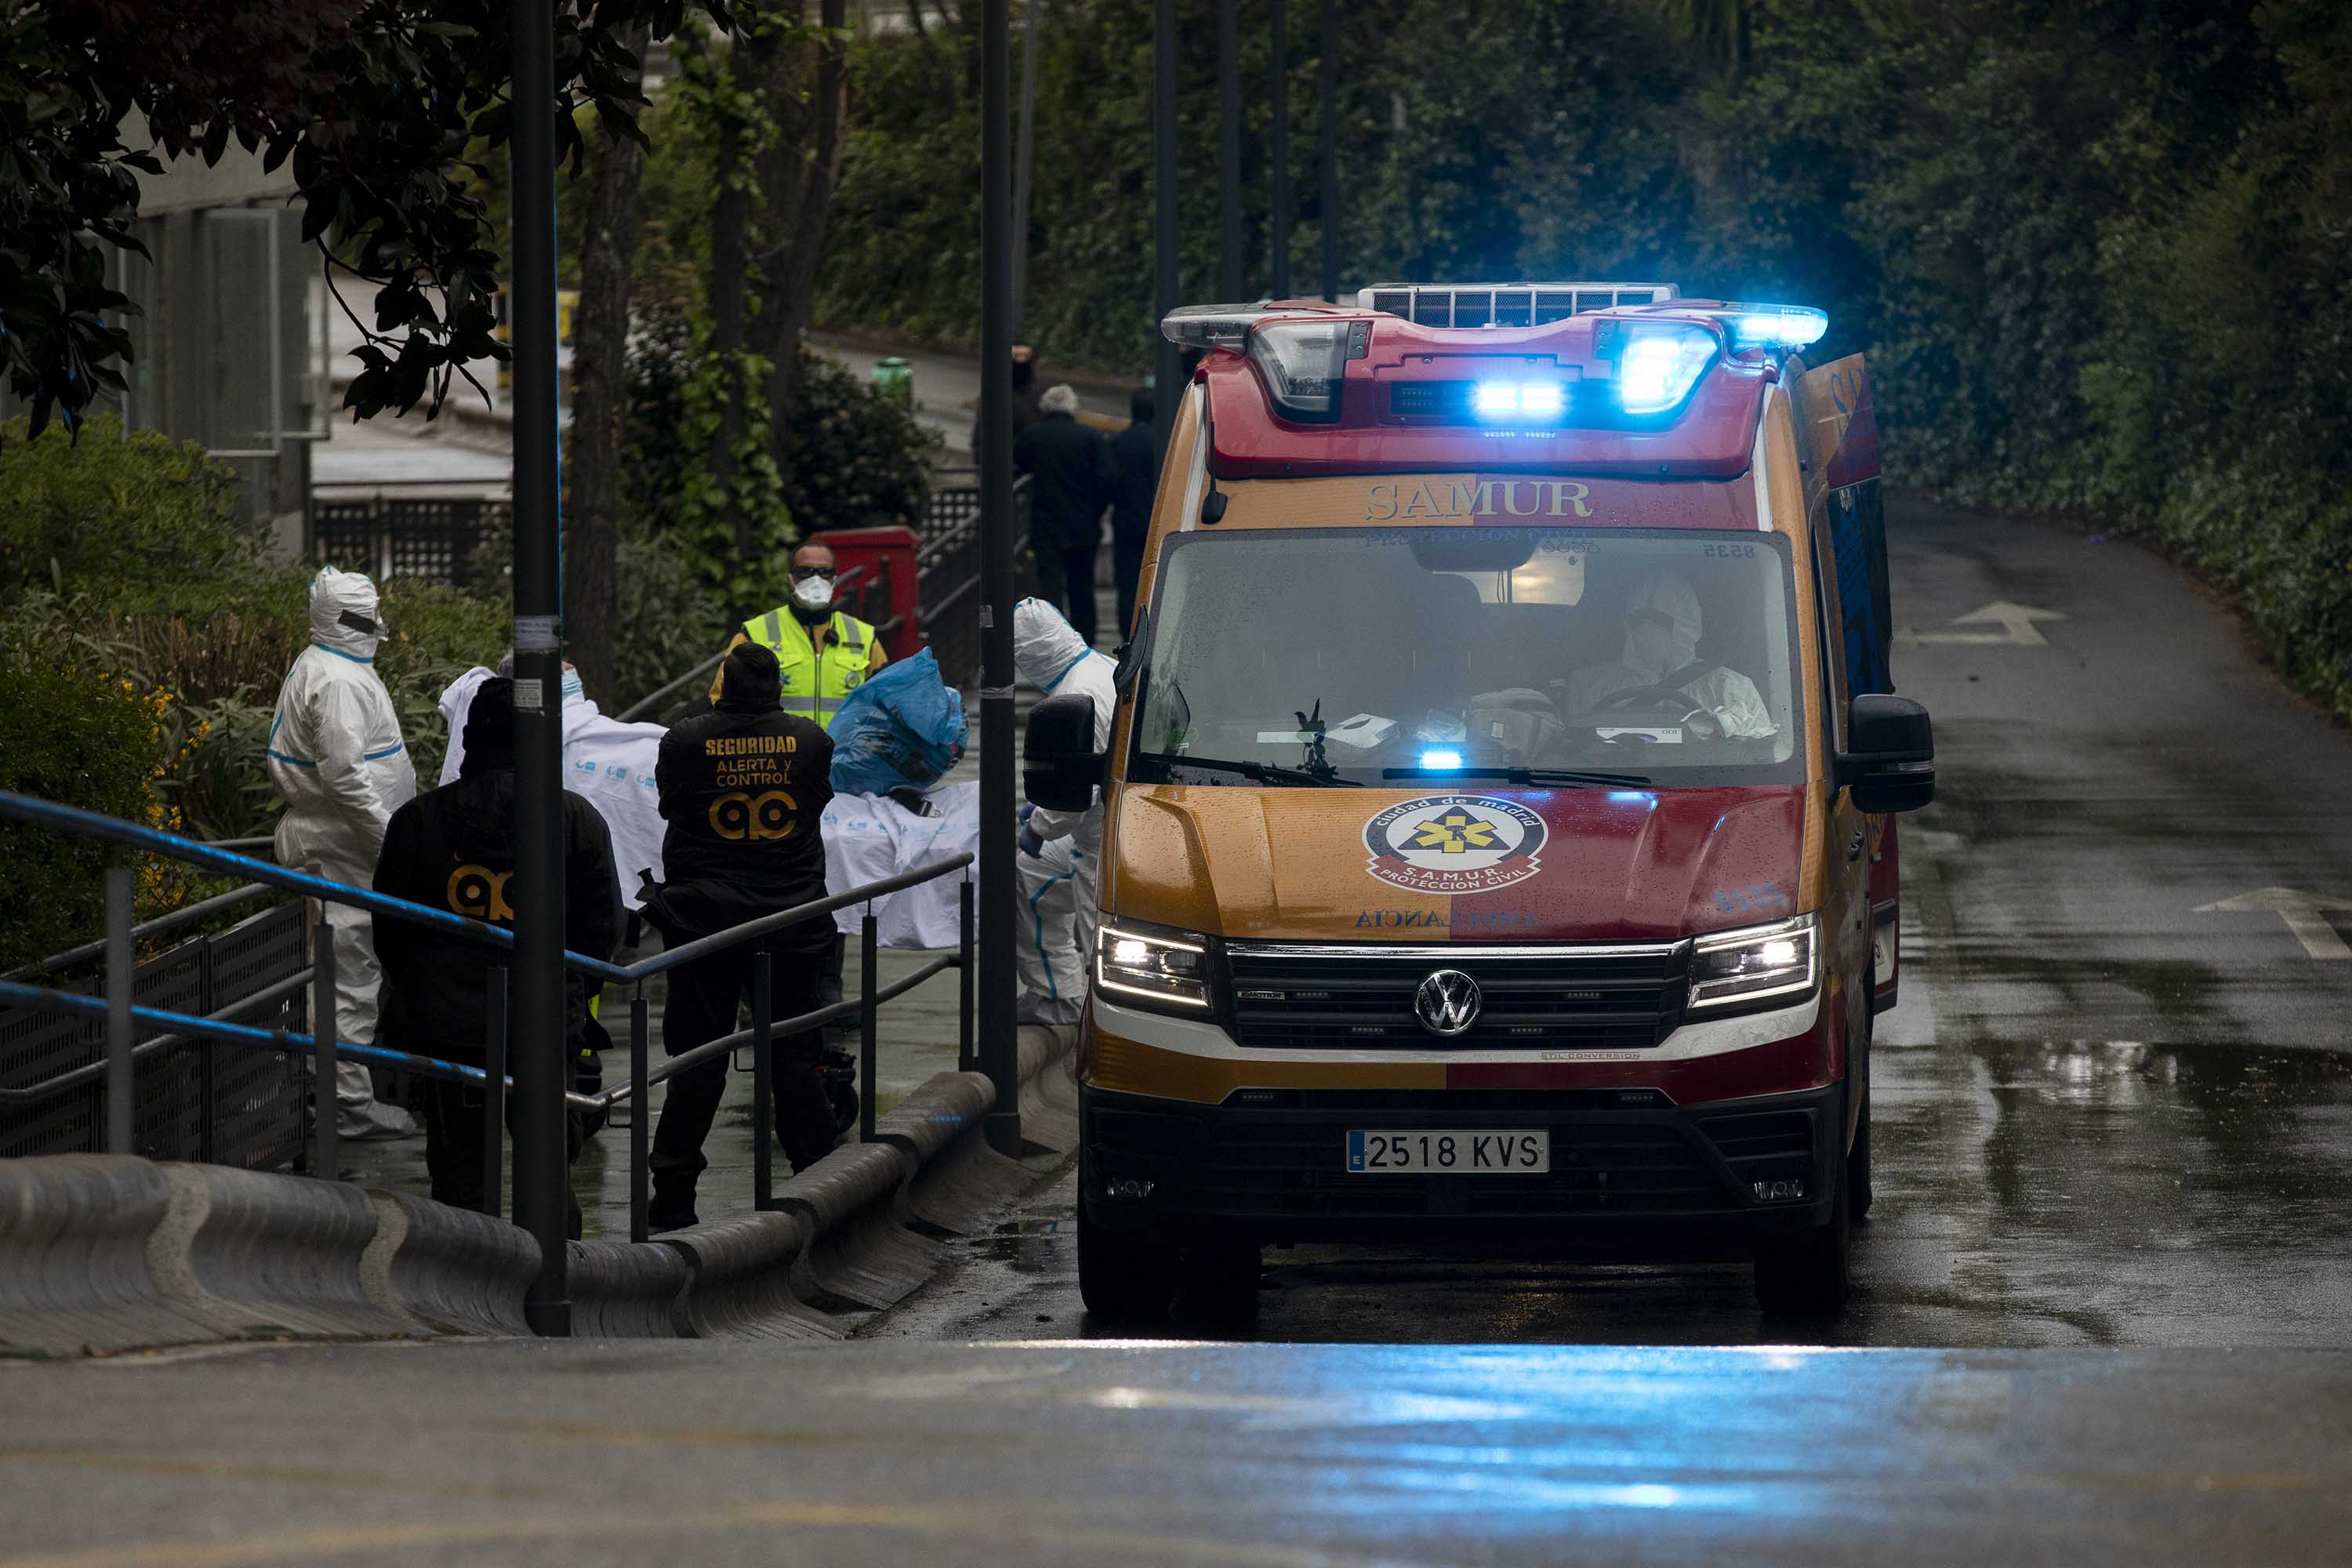 Medical staff move a patient into an ambulance at La Paz Hospital on March 16, in Madrid, Spain.